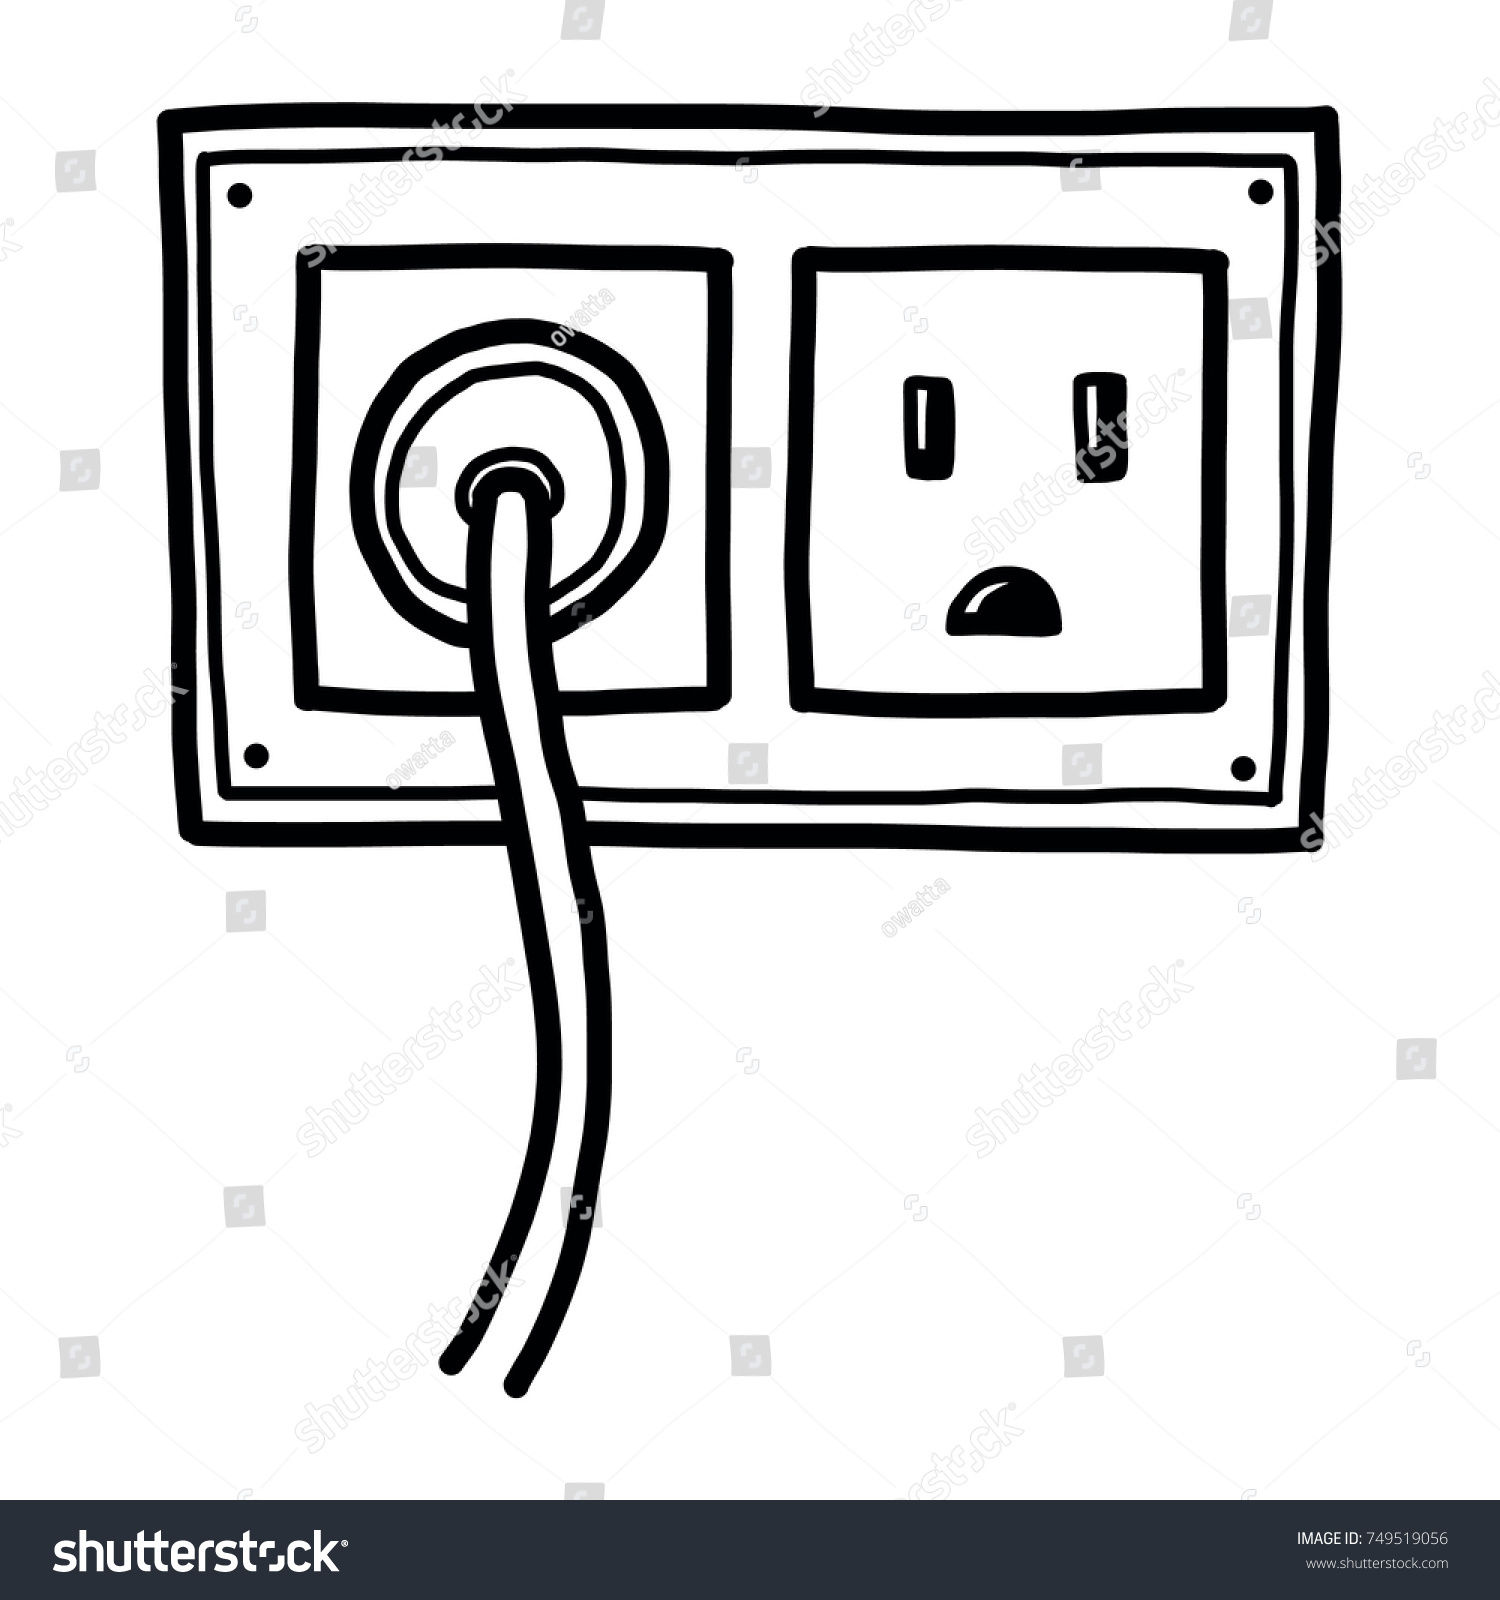 hight resolution of plug and electric socket cartoon vector and illustration black and white hand drawn sketch style isolated on white background